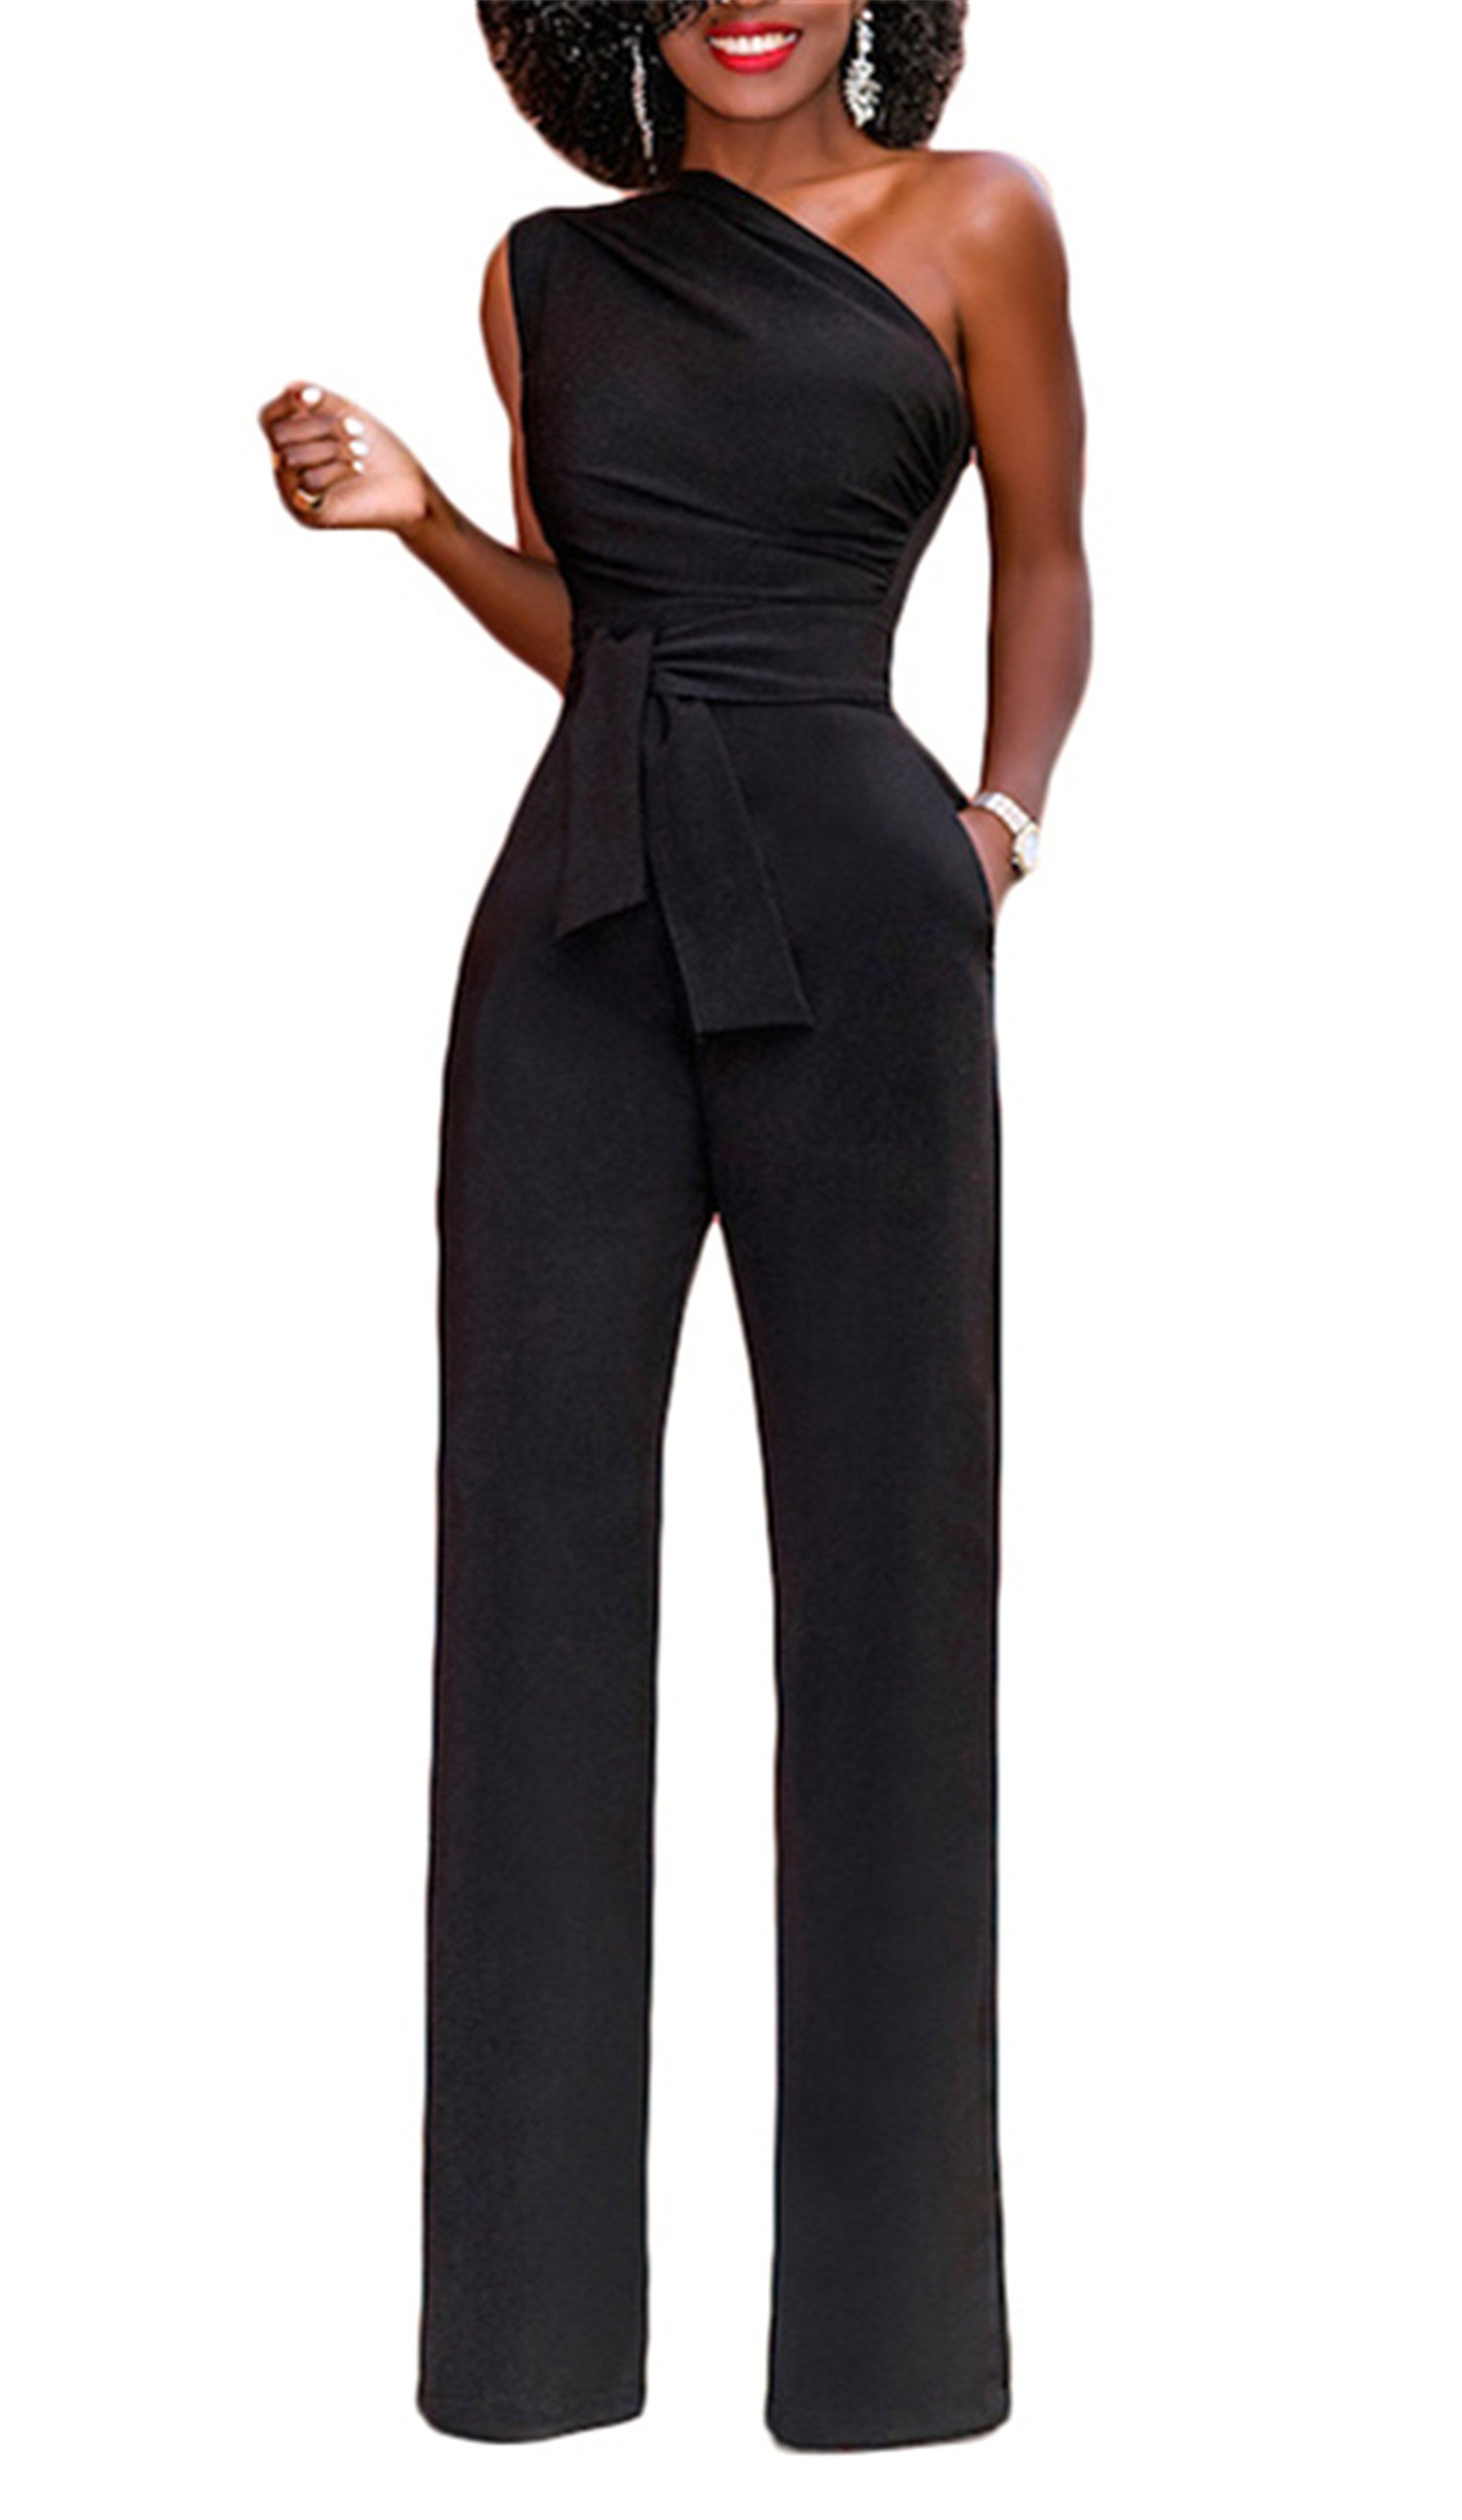 onlypuff Jumpsuits and Rompers for Women Off The Shoulder Long Pants Work Formal Jumpsuit with Belt (Large, Black)